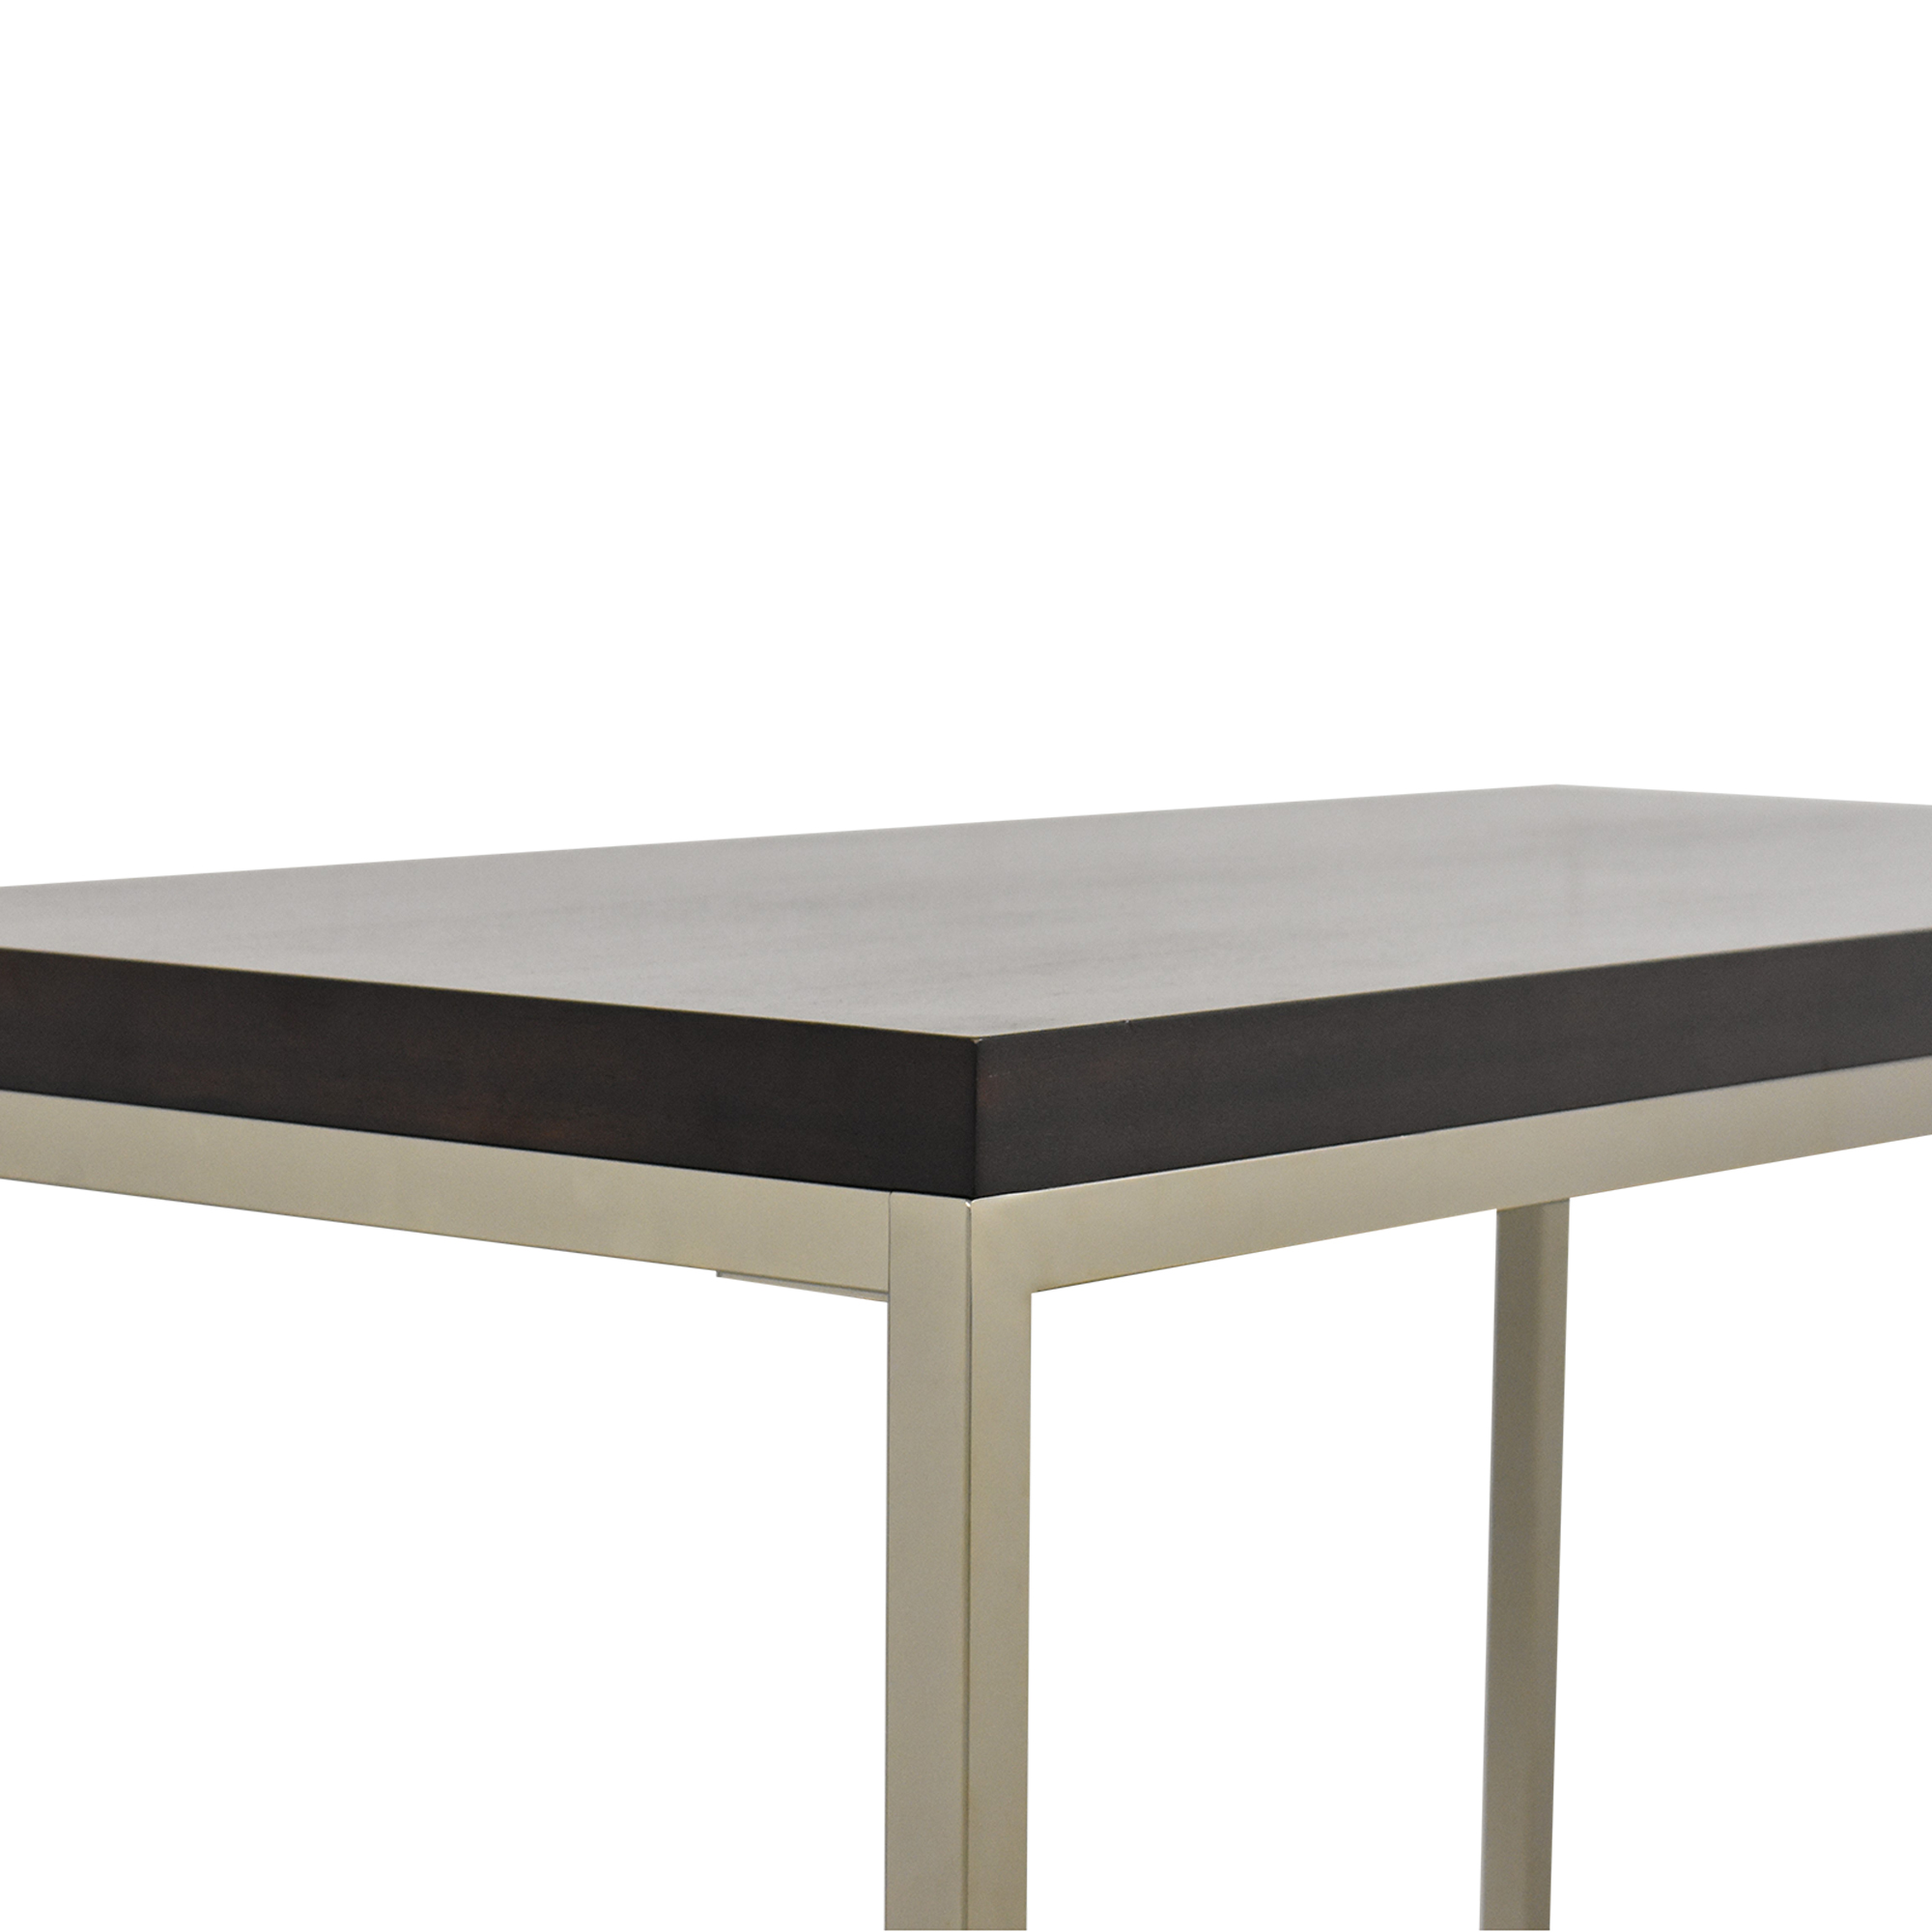 CB2 CB2 Box Frame Dining Table Dinner Tables